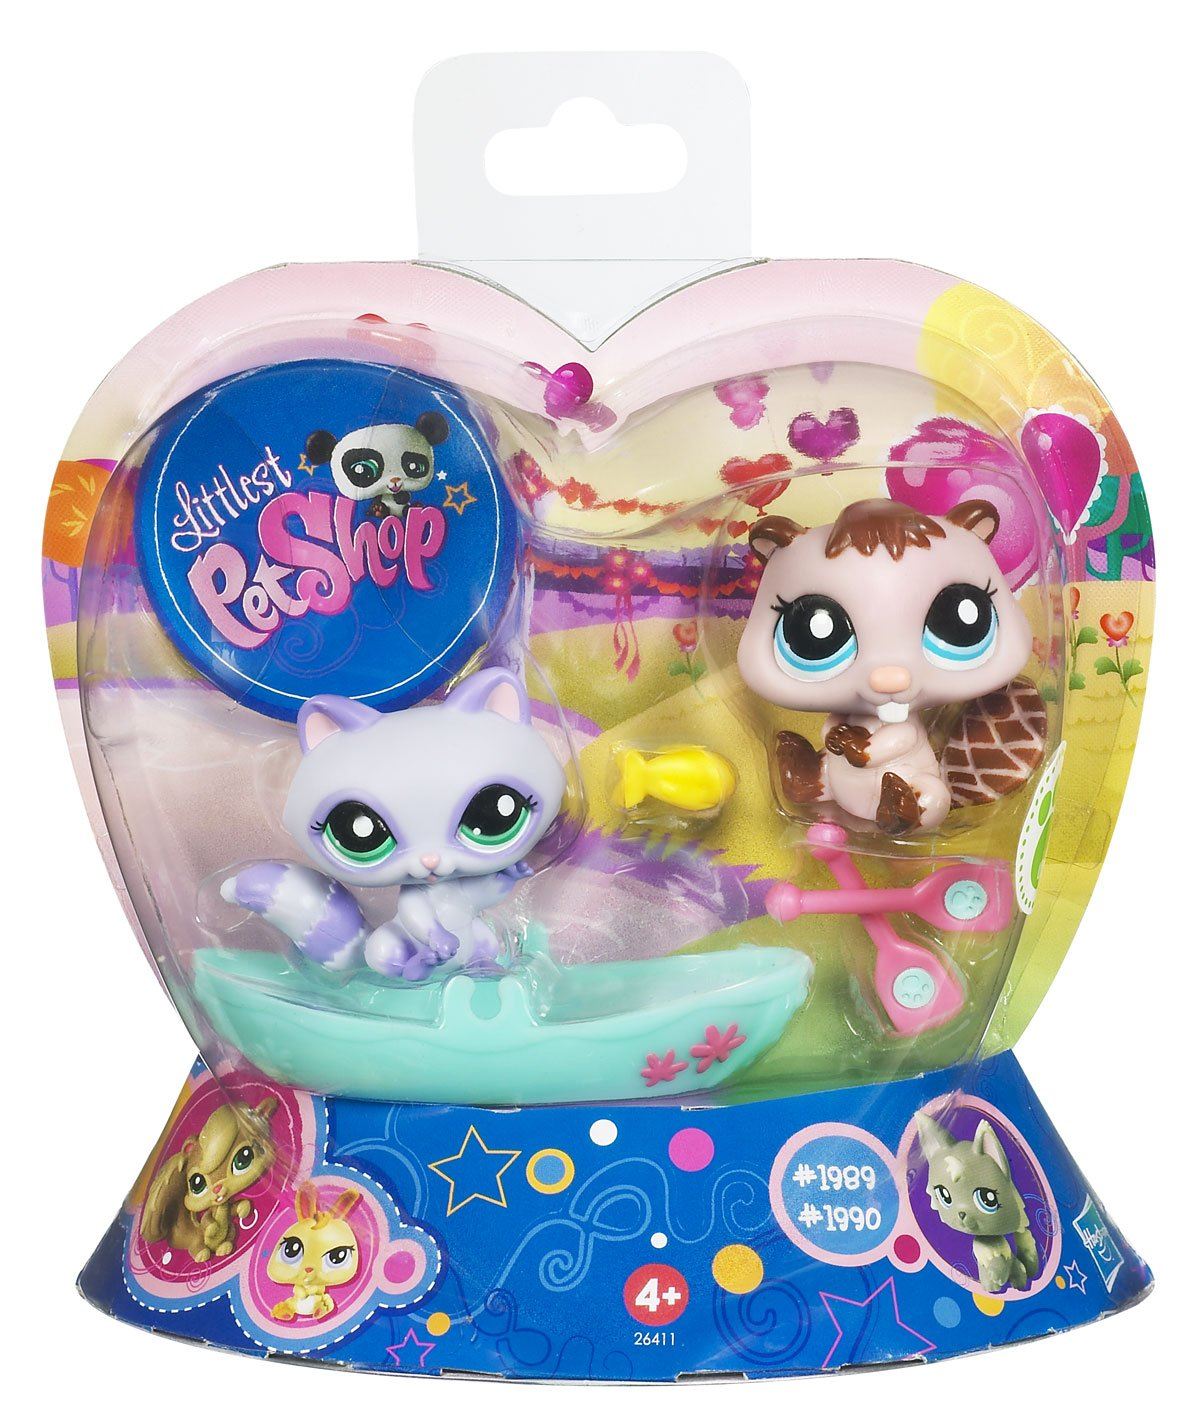 Littlest Pet Shop 2 Pack with Accessories  1989 &  1990